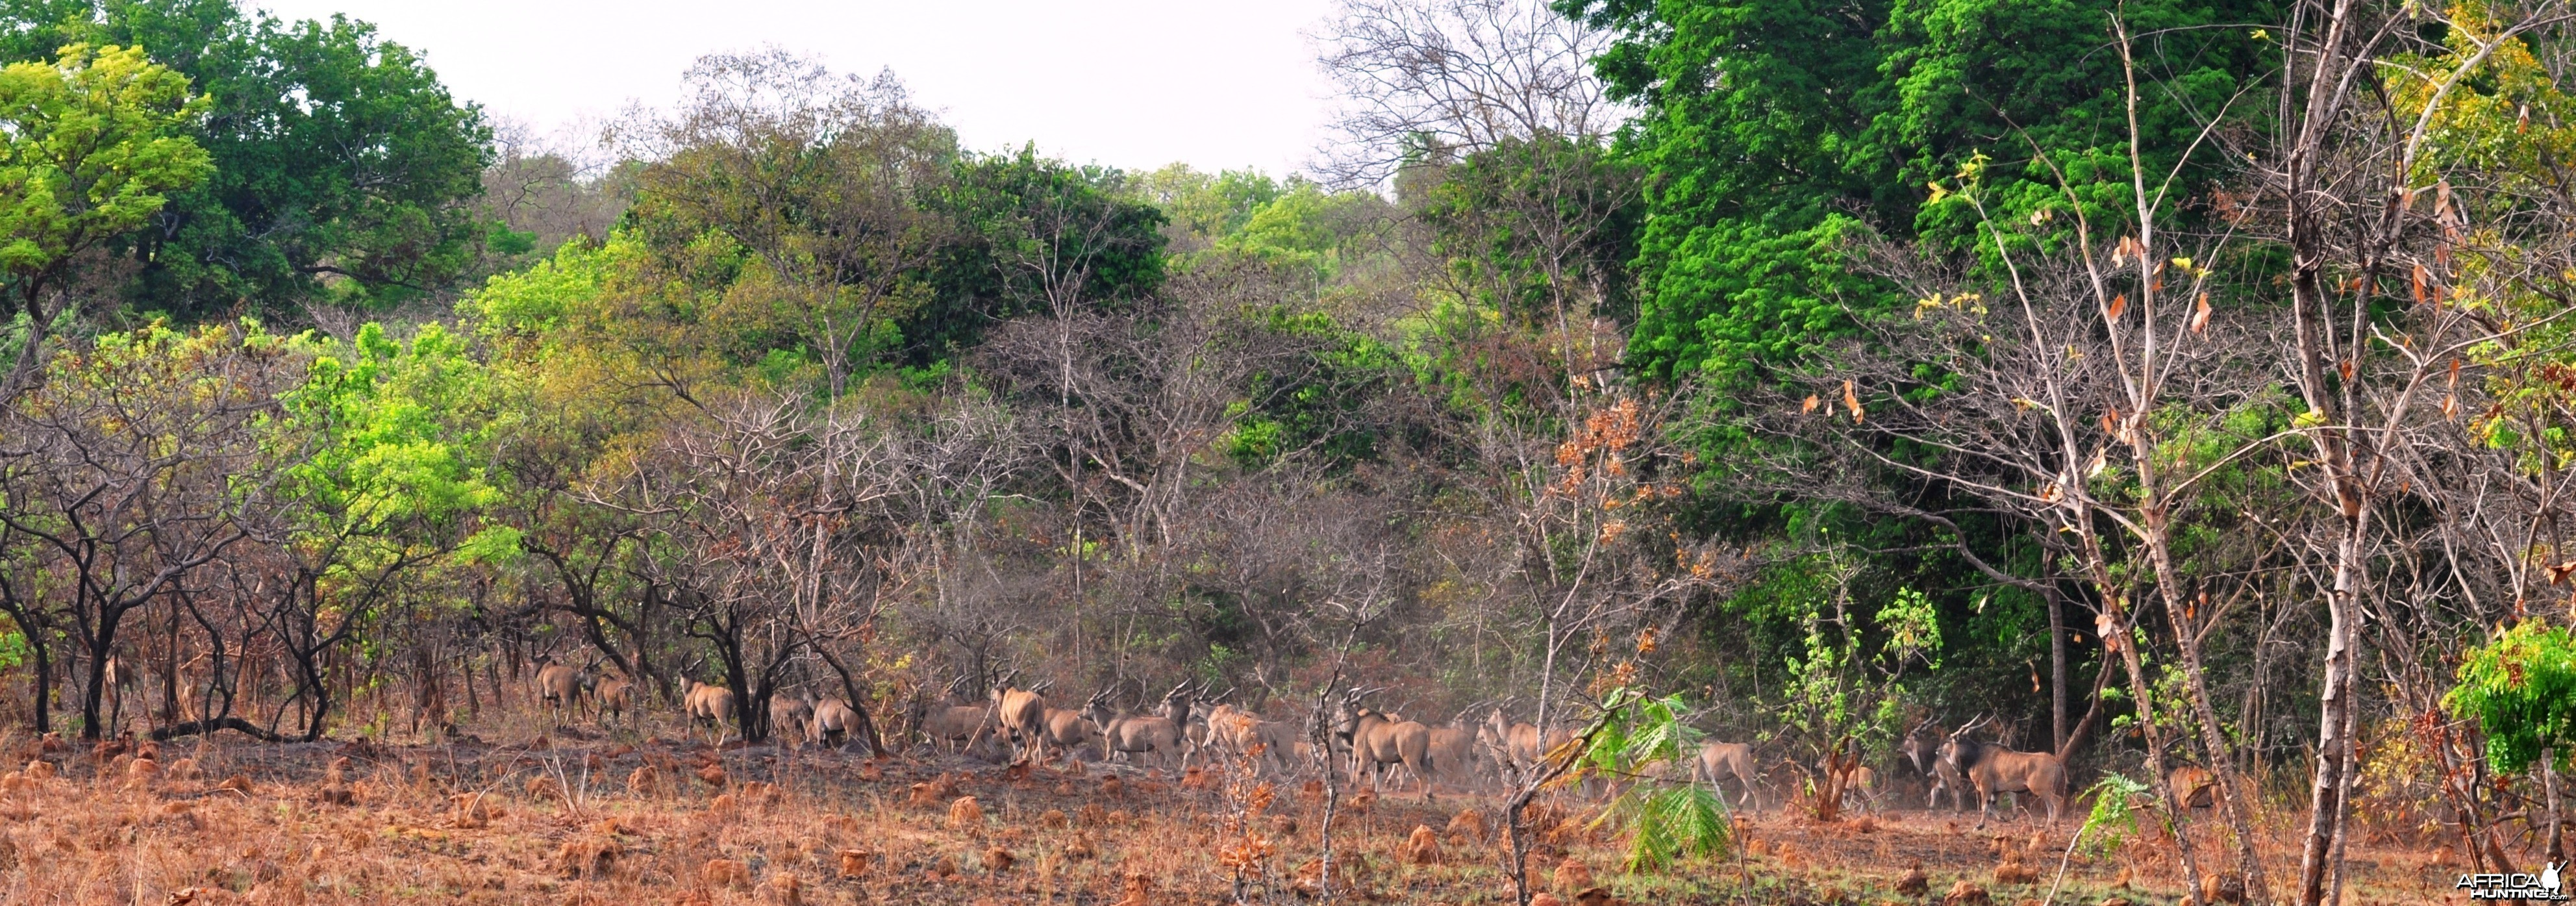 Lord Derby Eland in Central African Republic